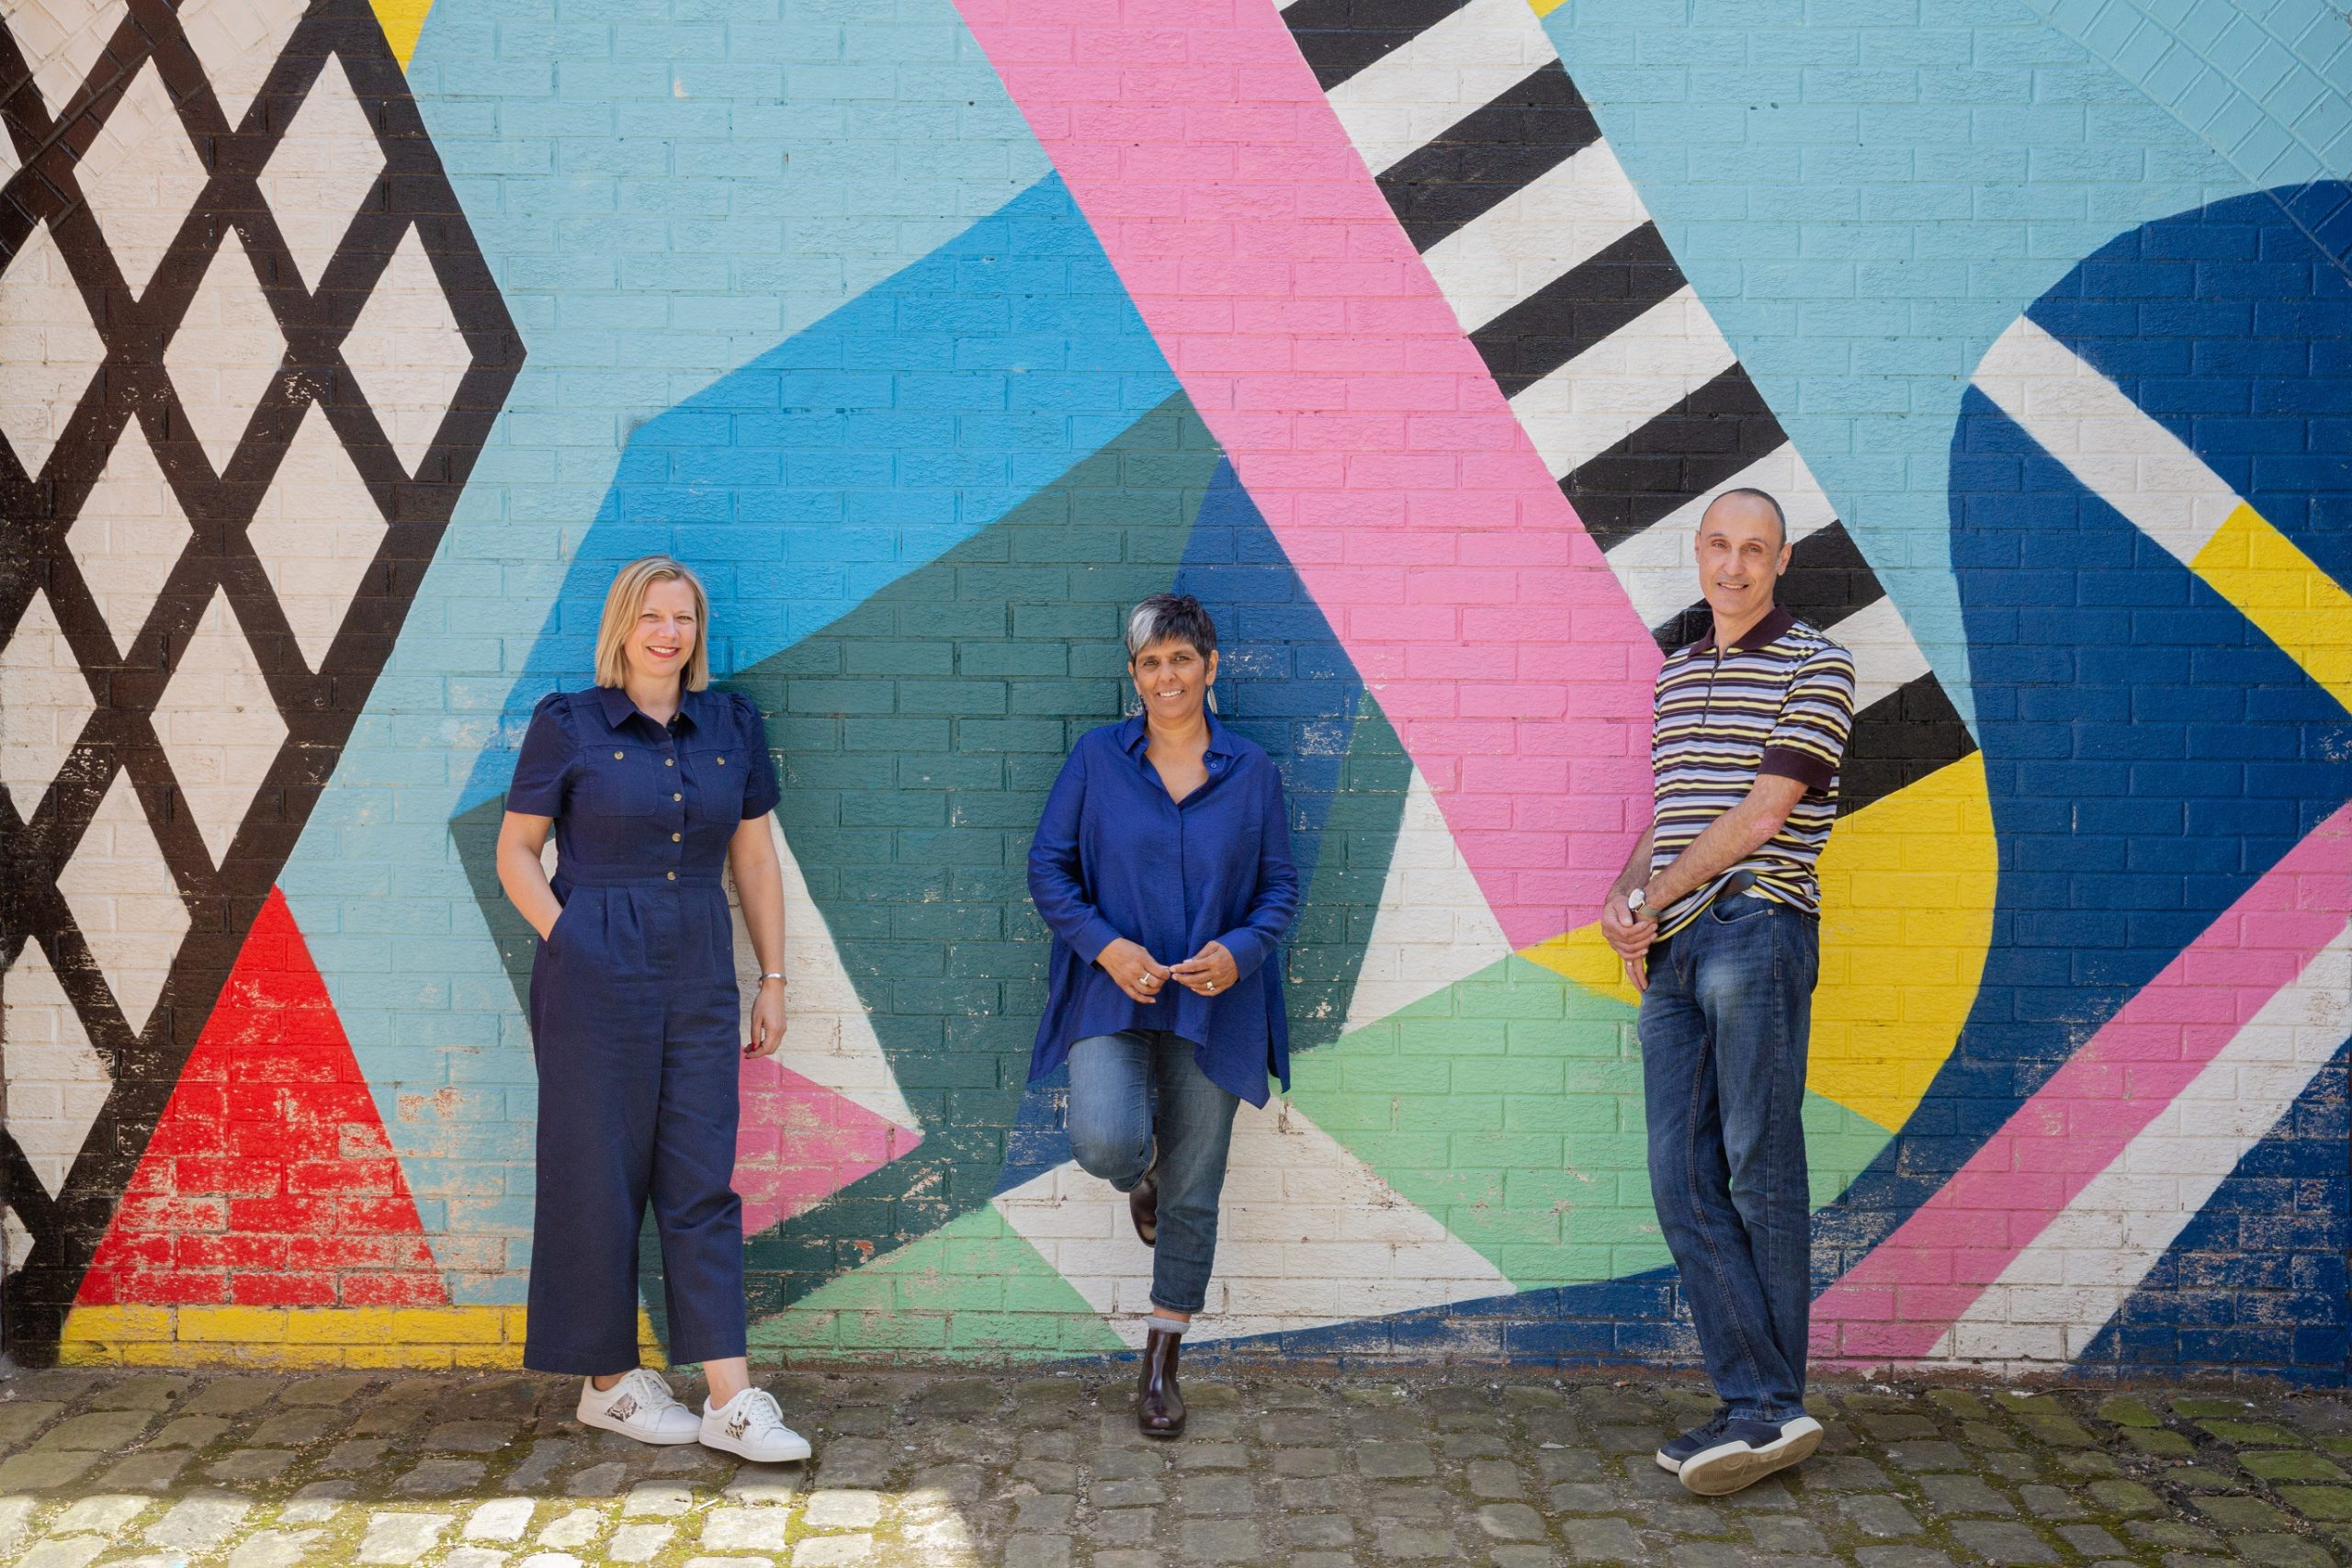 The Leeds 2023 team, from left to right: Abigail Scott Paul, director of external relations; Kully Thiarai, creative director/CEO; Mark Hollander, executive director